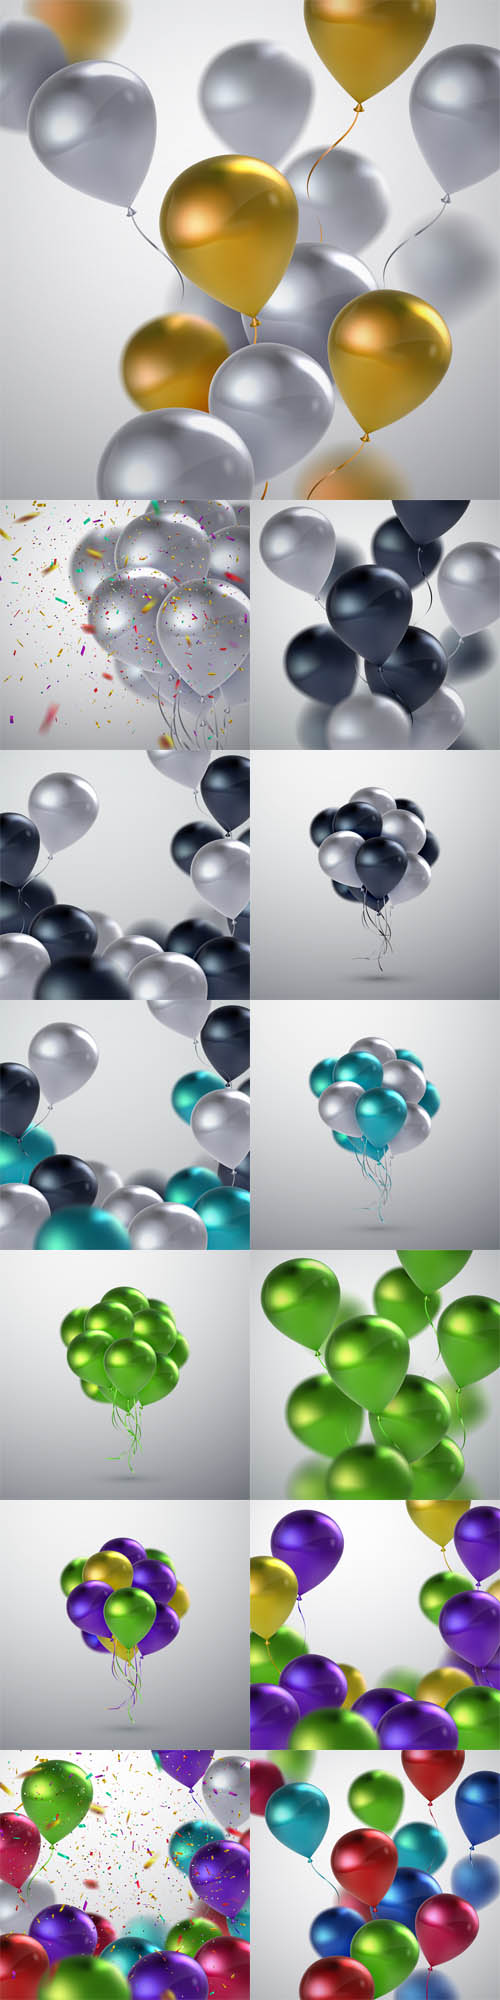 Vector Realistic Glossy Balloons